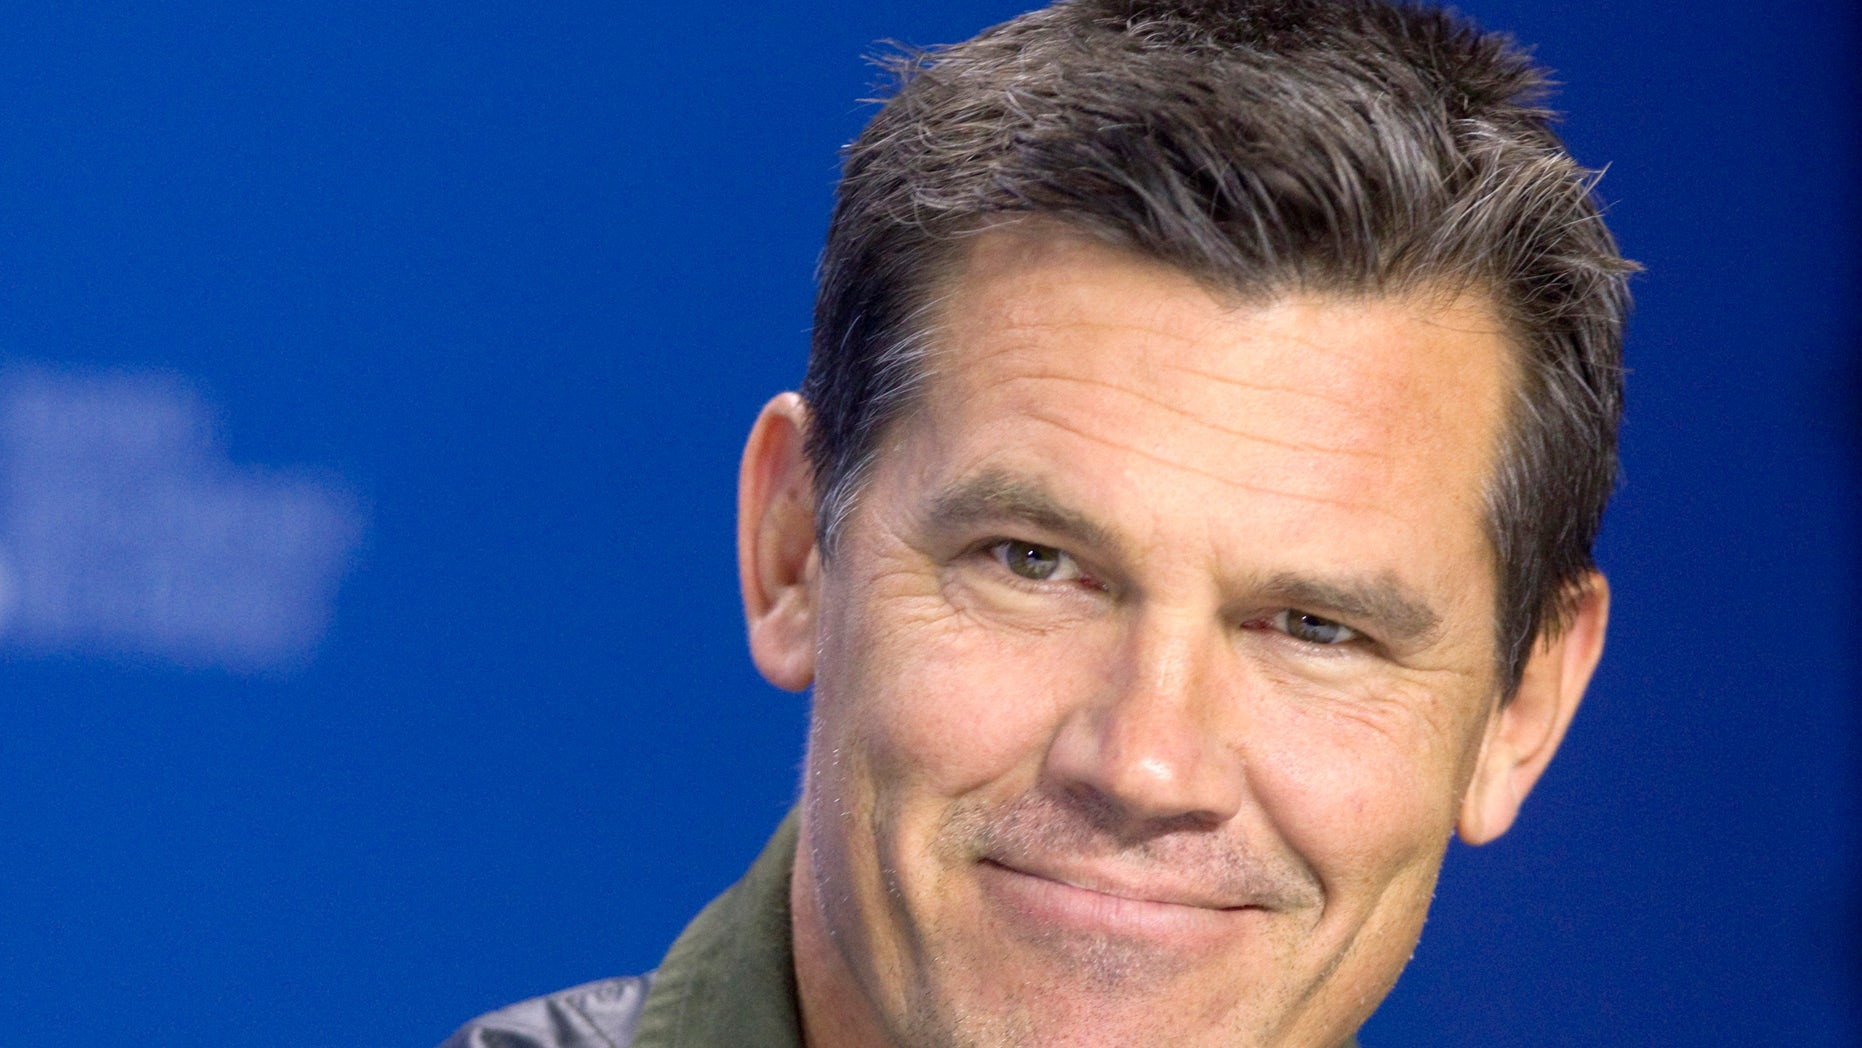 """September 7, 2103. Actor Josh Brolin attends a news conference for the film """"Labor Day"""" at the 38th Toronto International Film Festival in Toronto, Canada."""